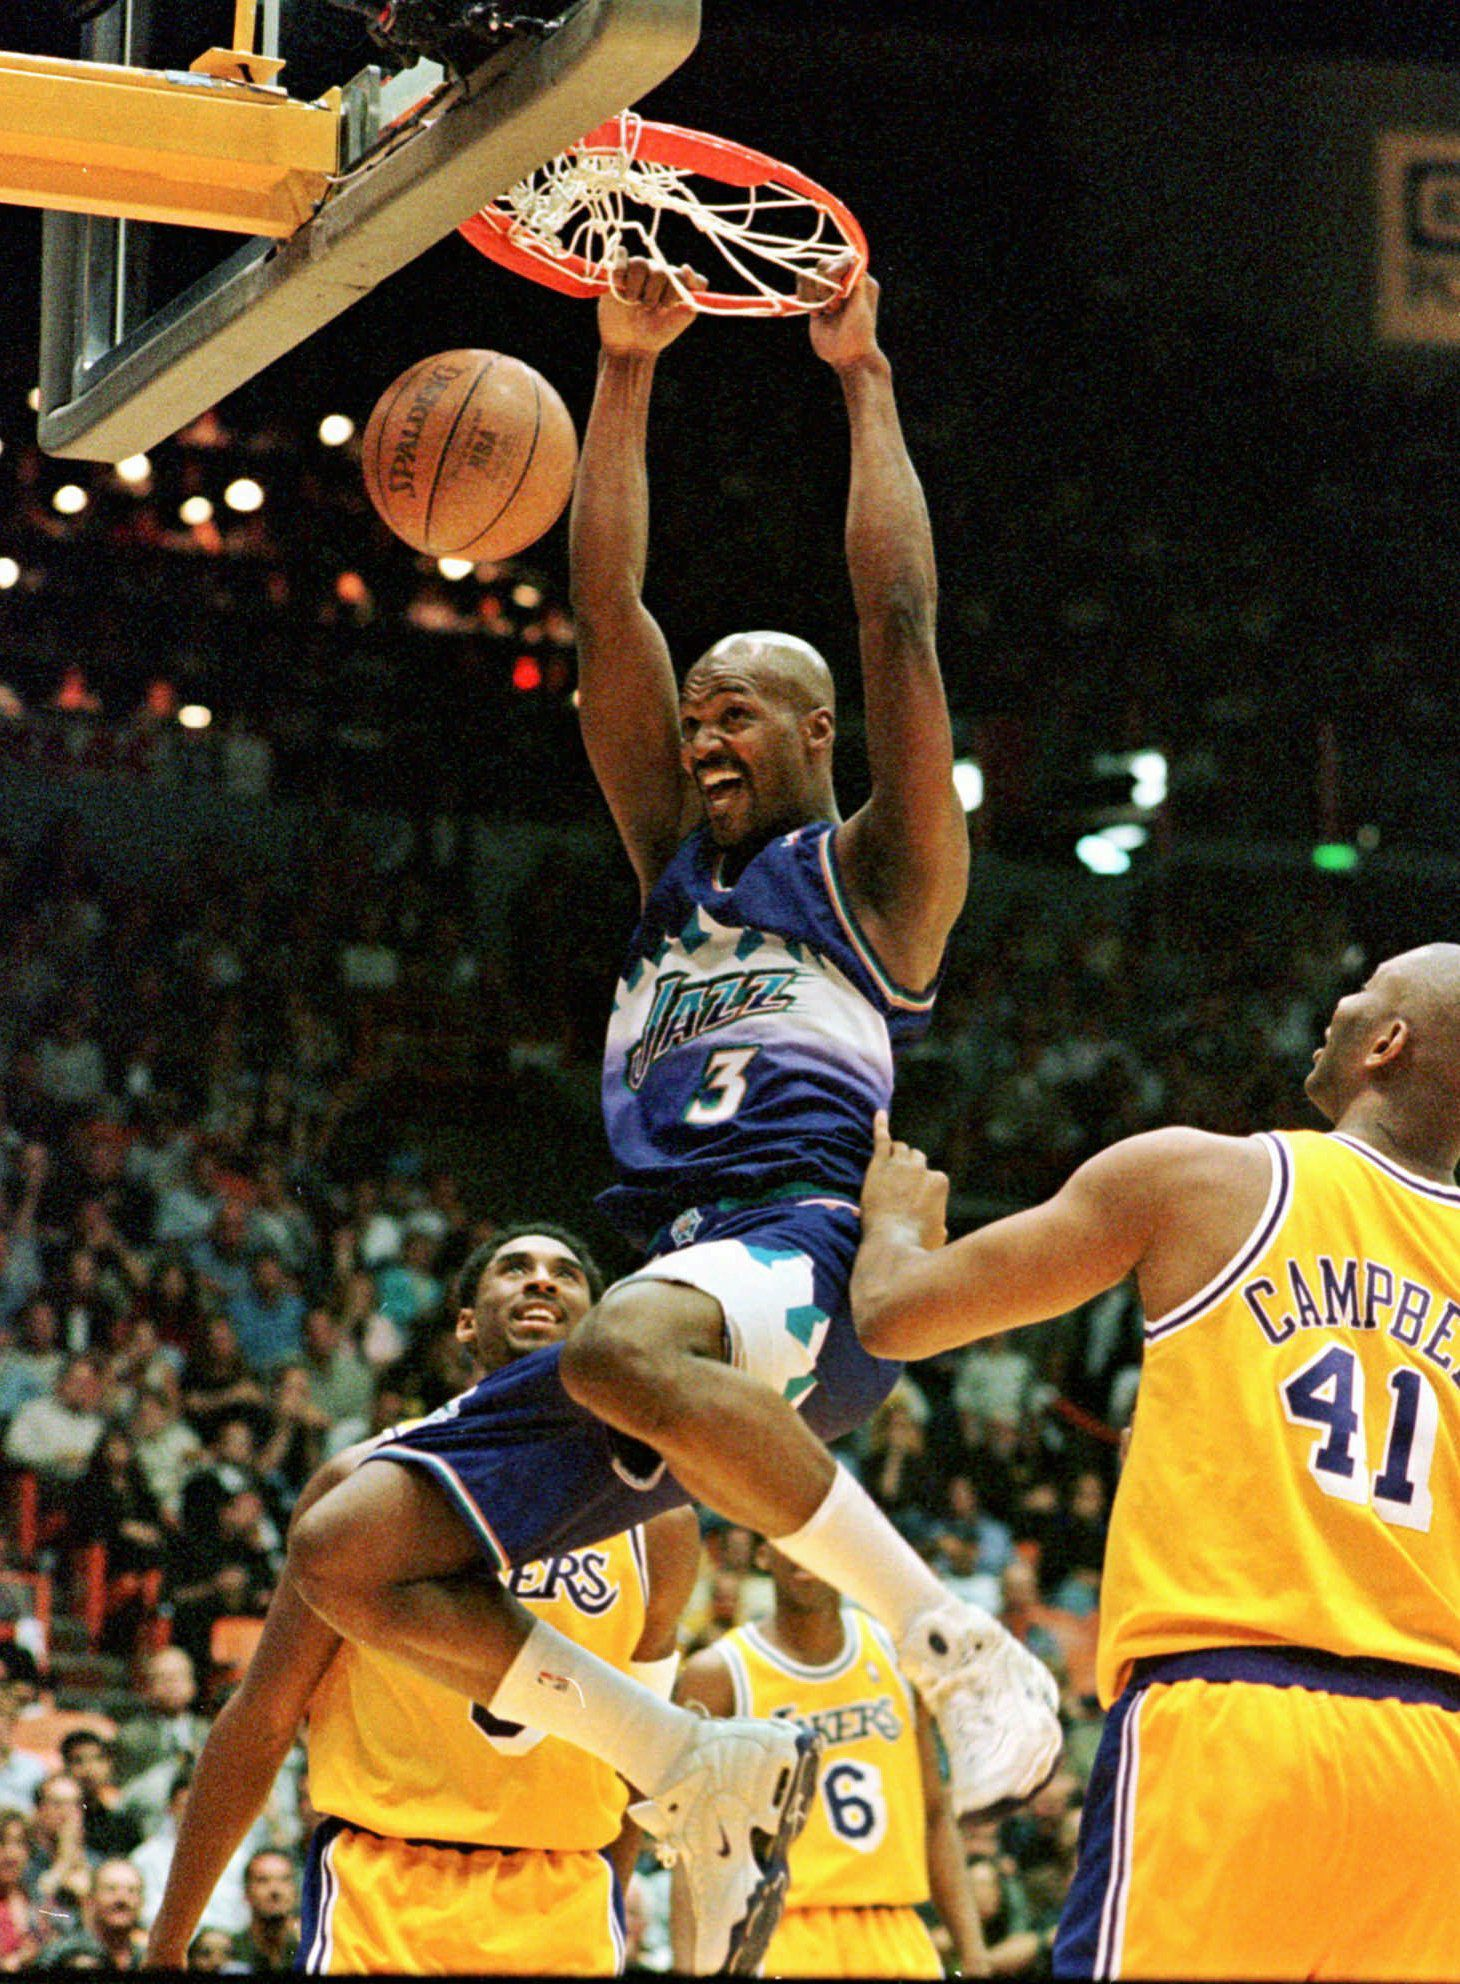 Michael Jordan S Last Dance Was Also The Last Chance For The Utah Jazz Who Have Never Gotten Closer To A Title